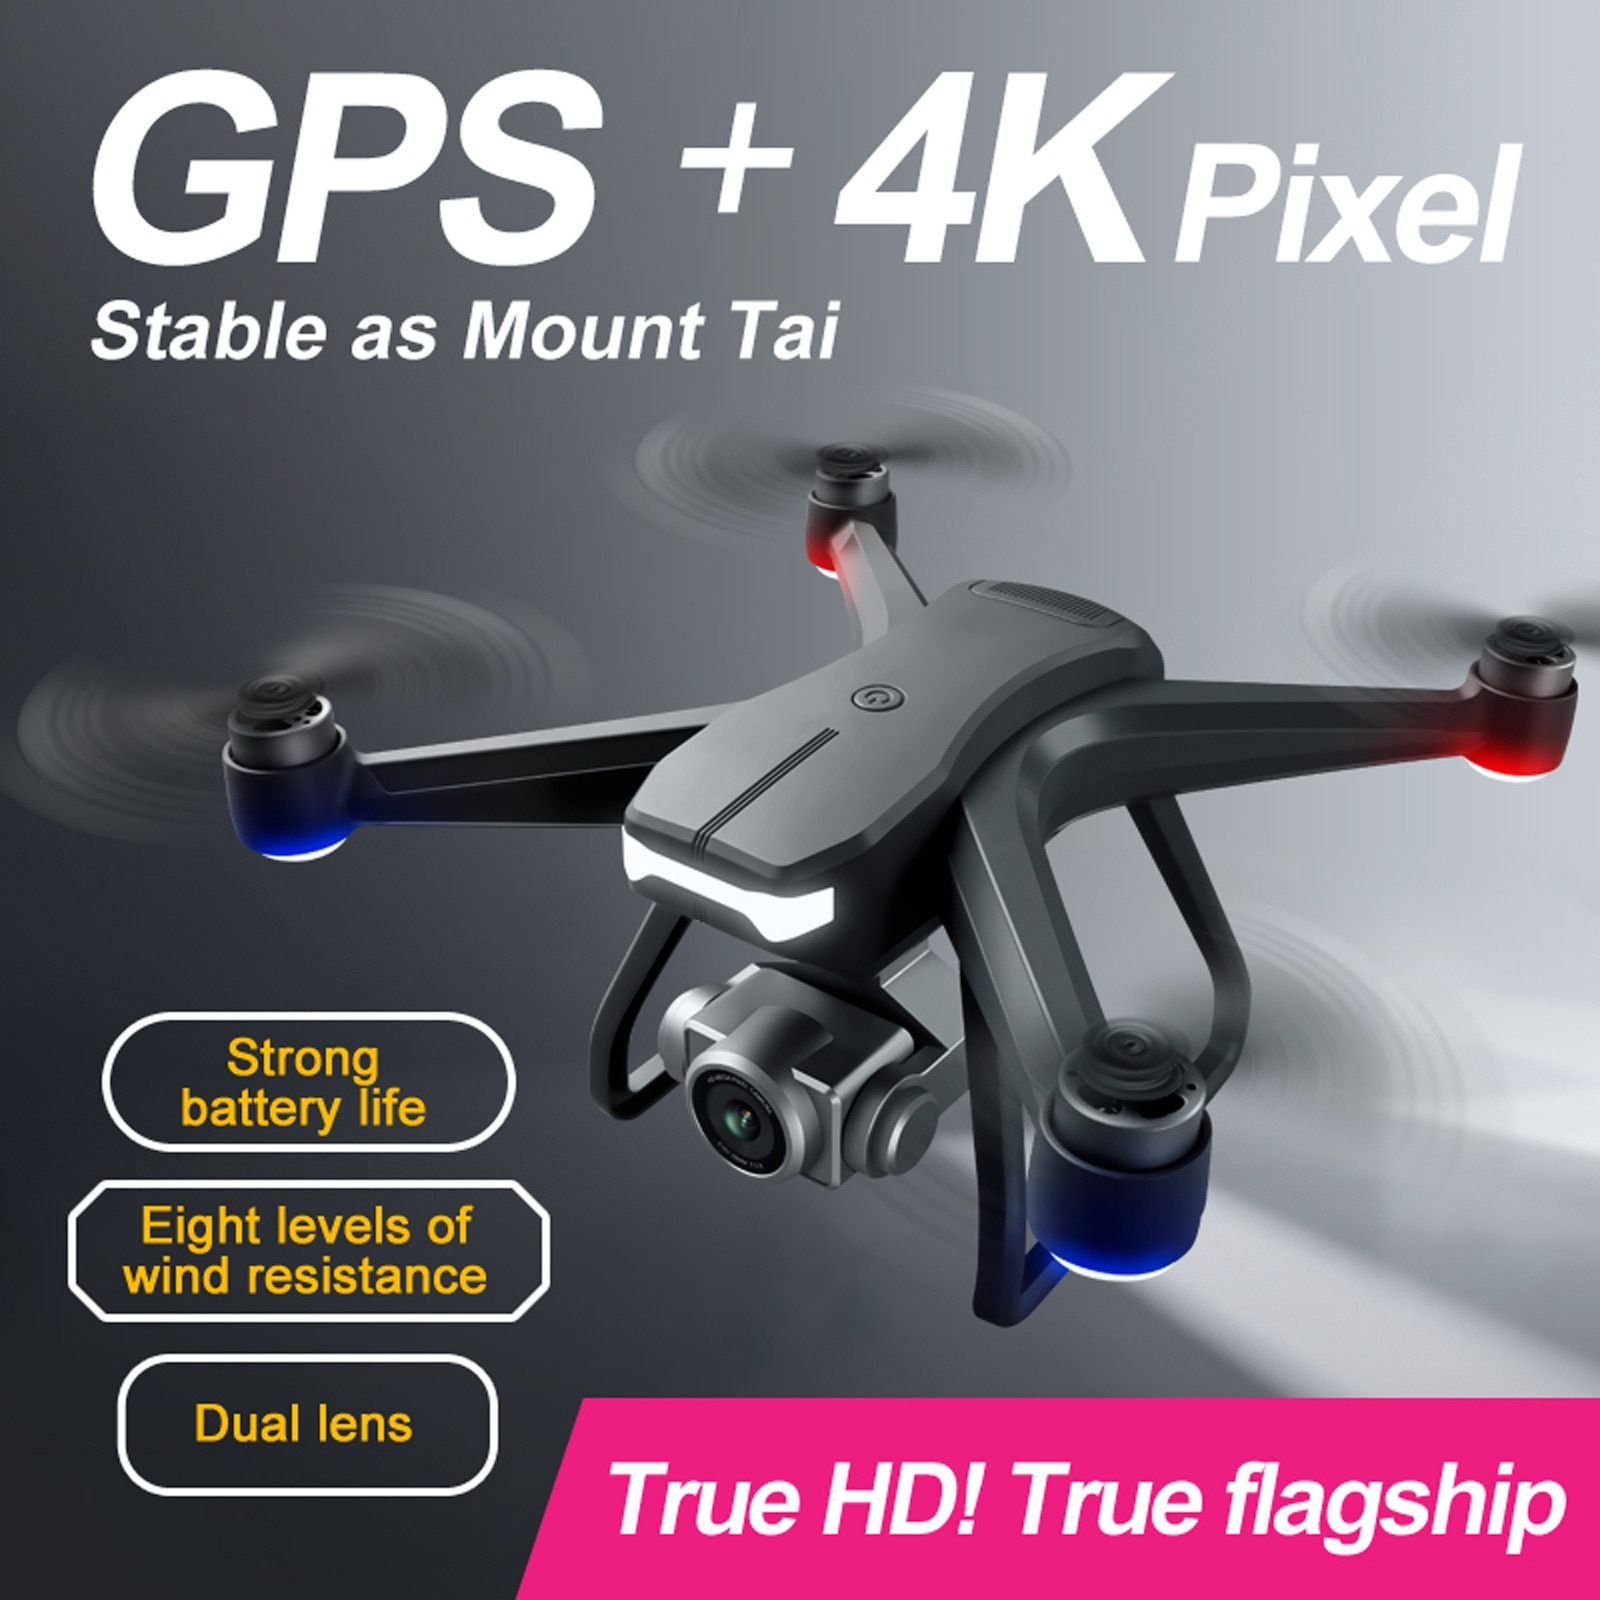 F11pro Gps Drone Esc 4k Hd Camera 5G Wifi Fpv Selfie RC Quadcopter Brushless Motor Uav Smart Follow Dron Helicopter Toy Gift #F